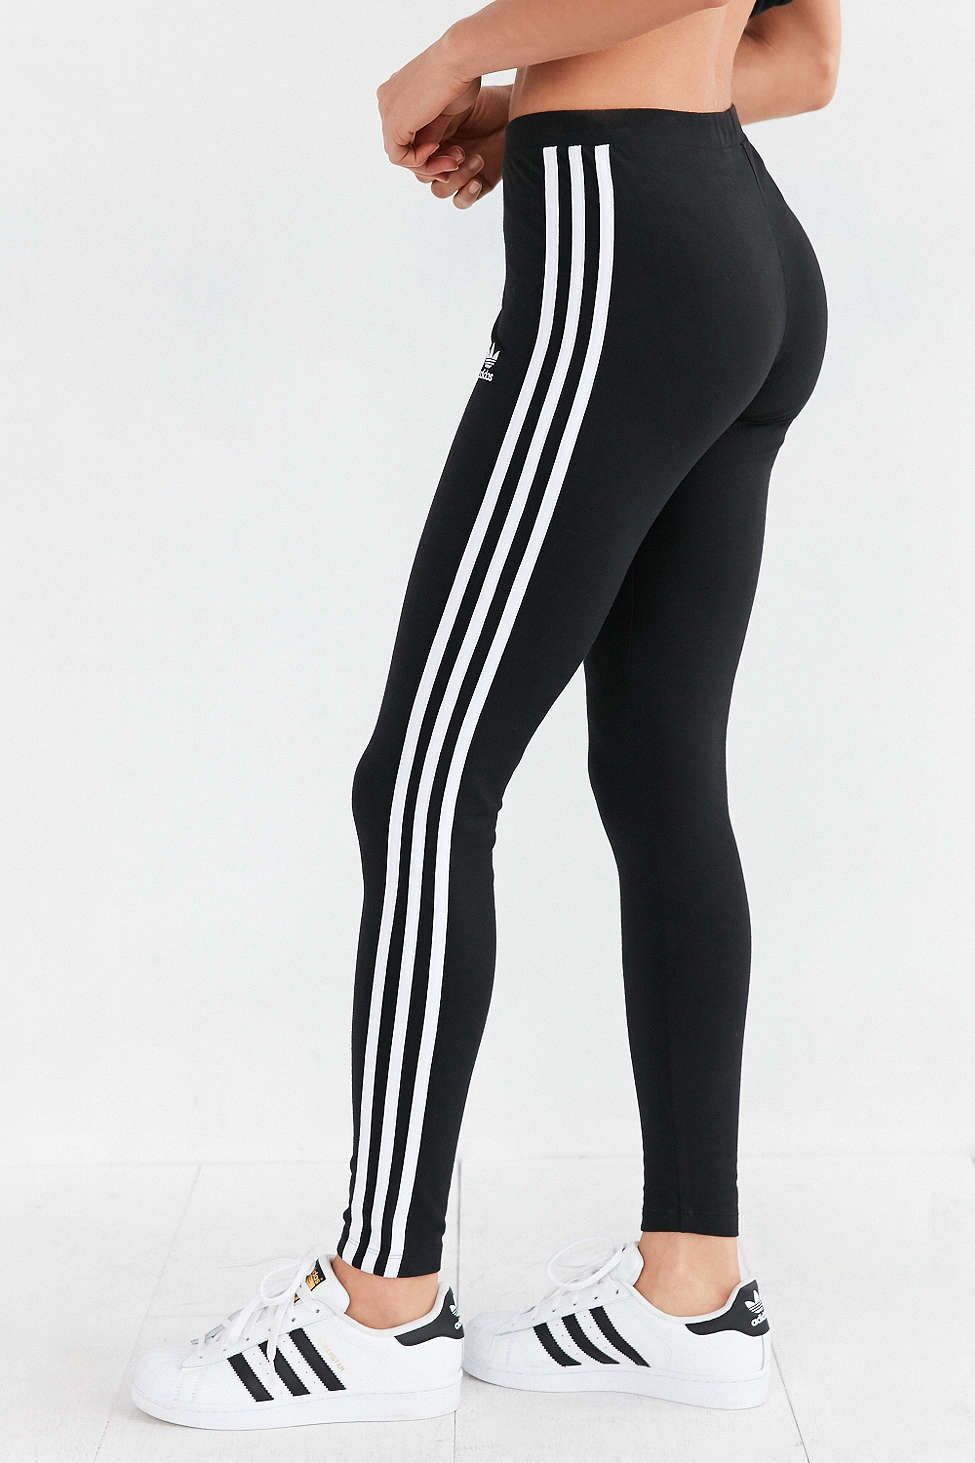 adidas originals 3 stripes legging urban outfitters. Black Bedroom Furniture Sets. Home Design Ideas